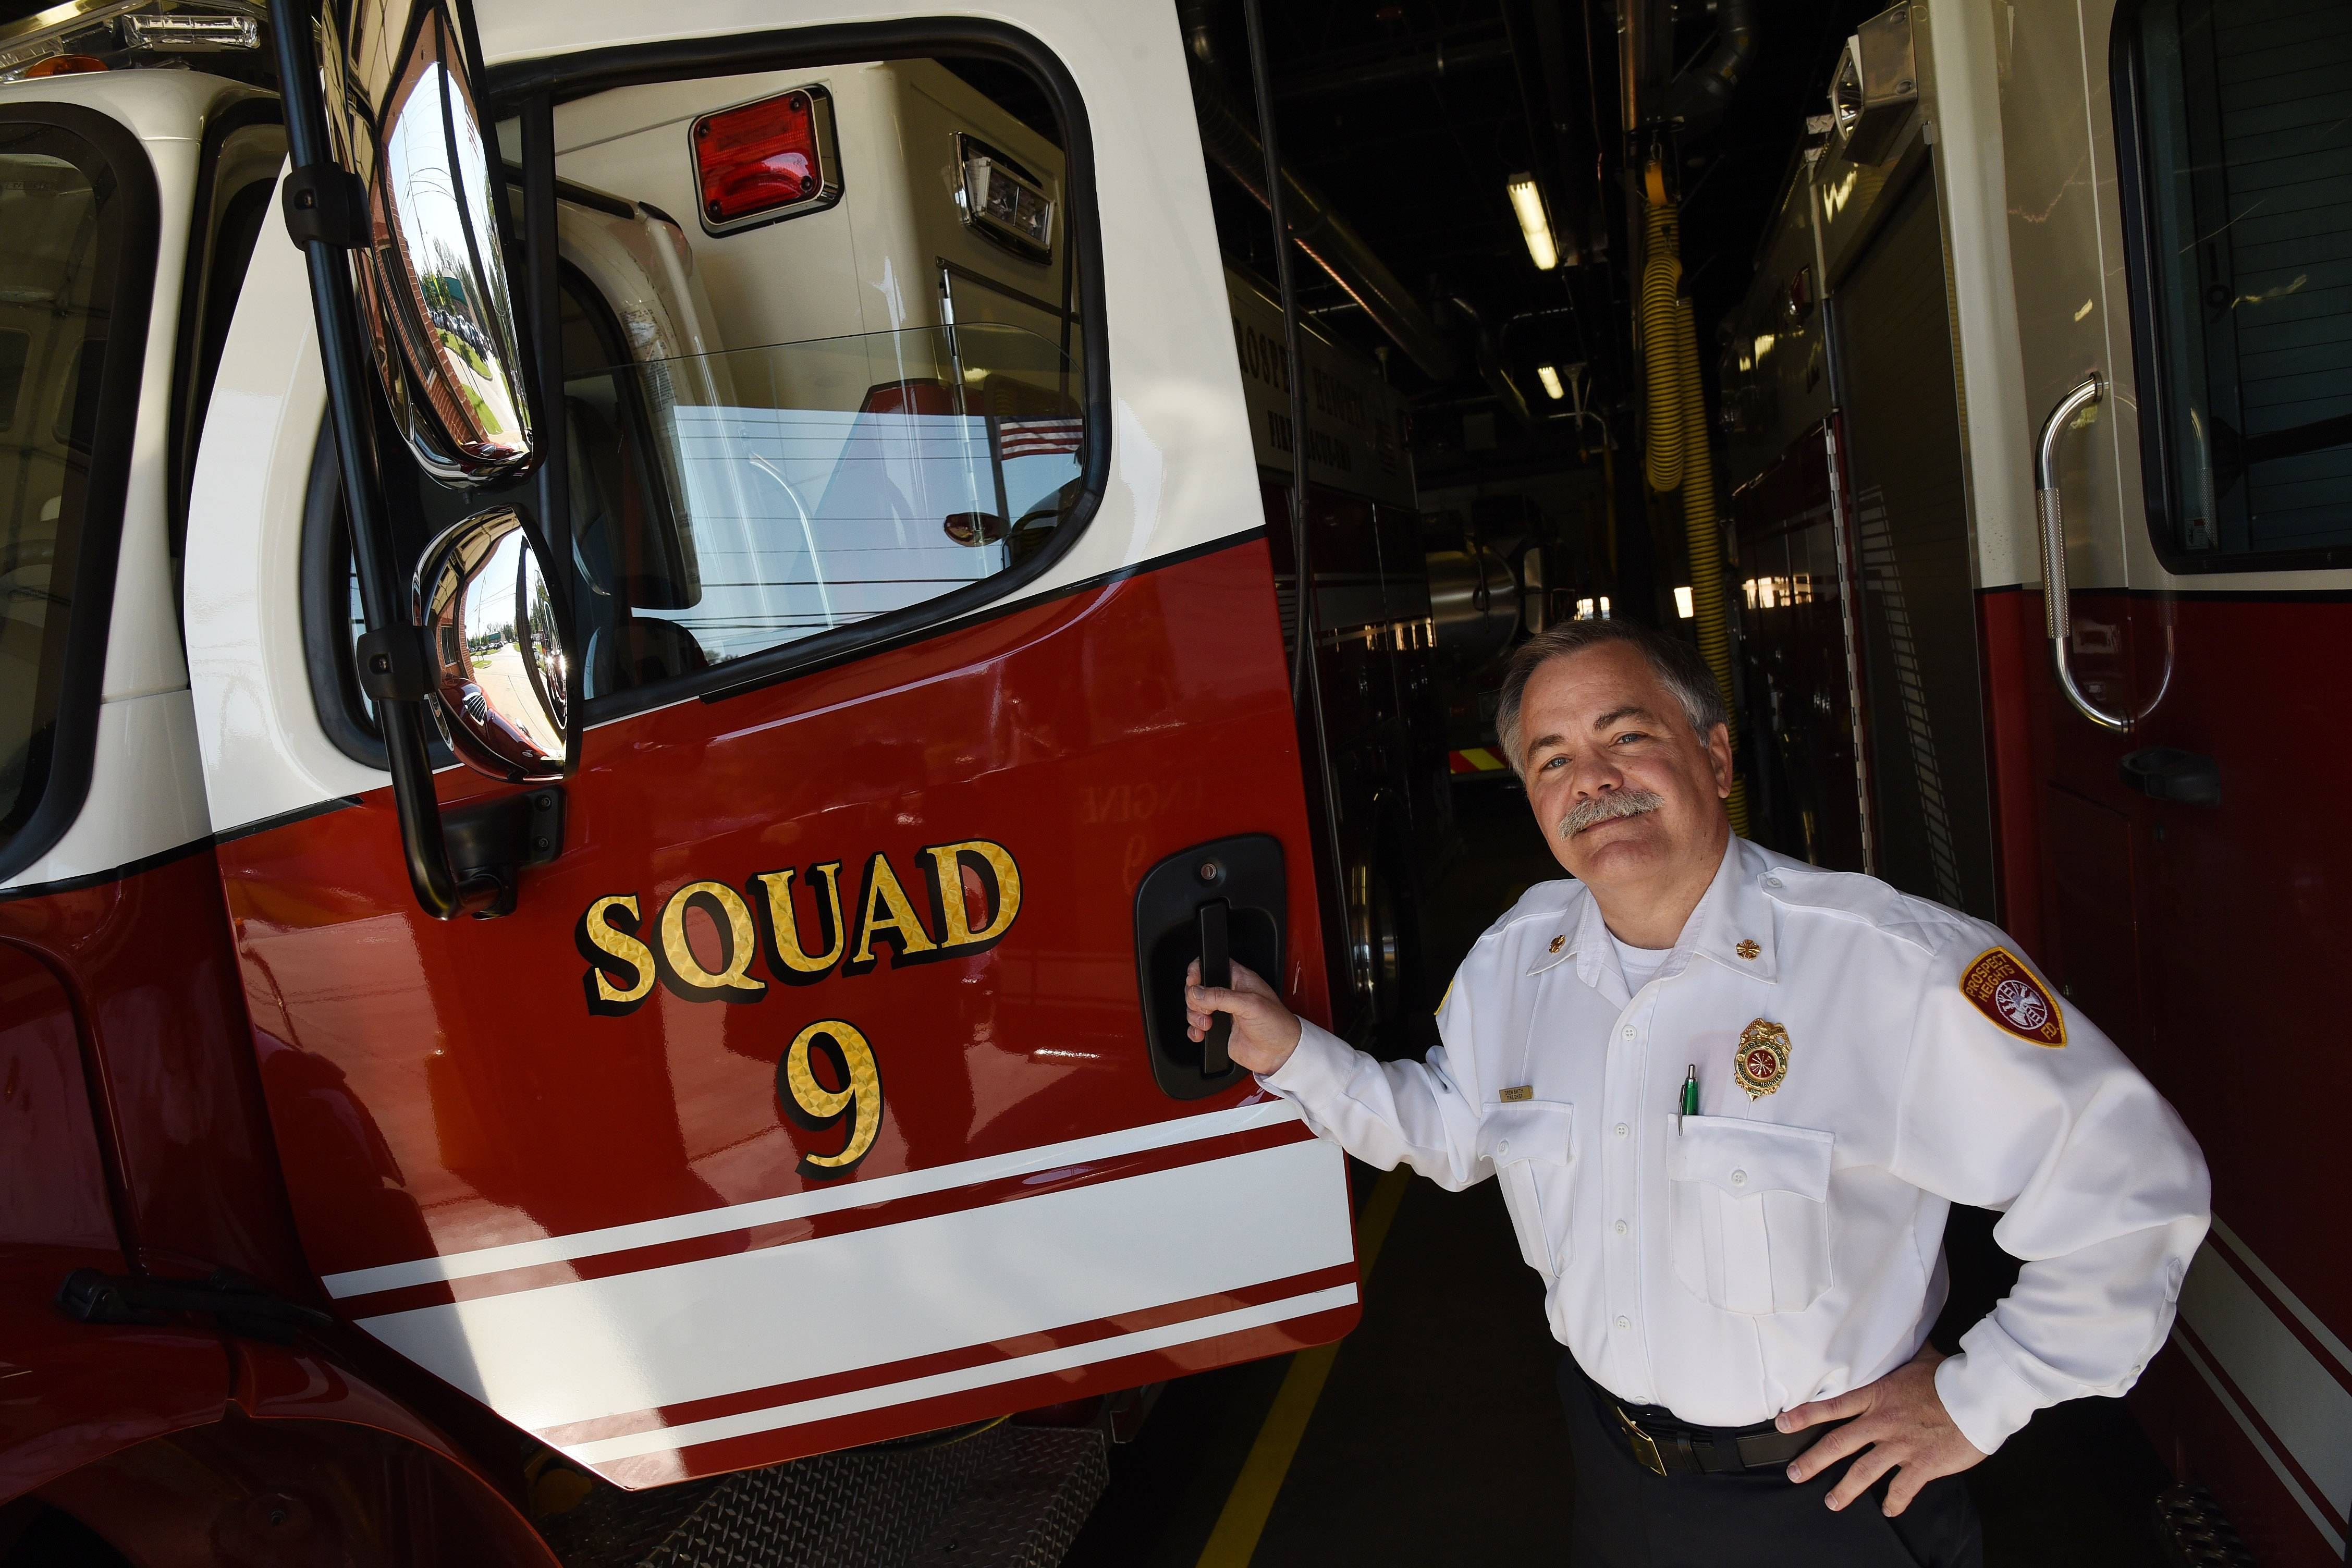 New Prospect Heights Fire Chief Drew Smith has spent 35 years with the department, including the last 16 as deputy chief.